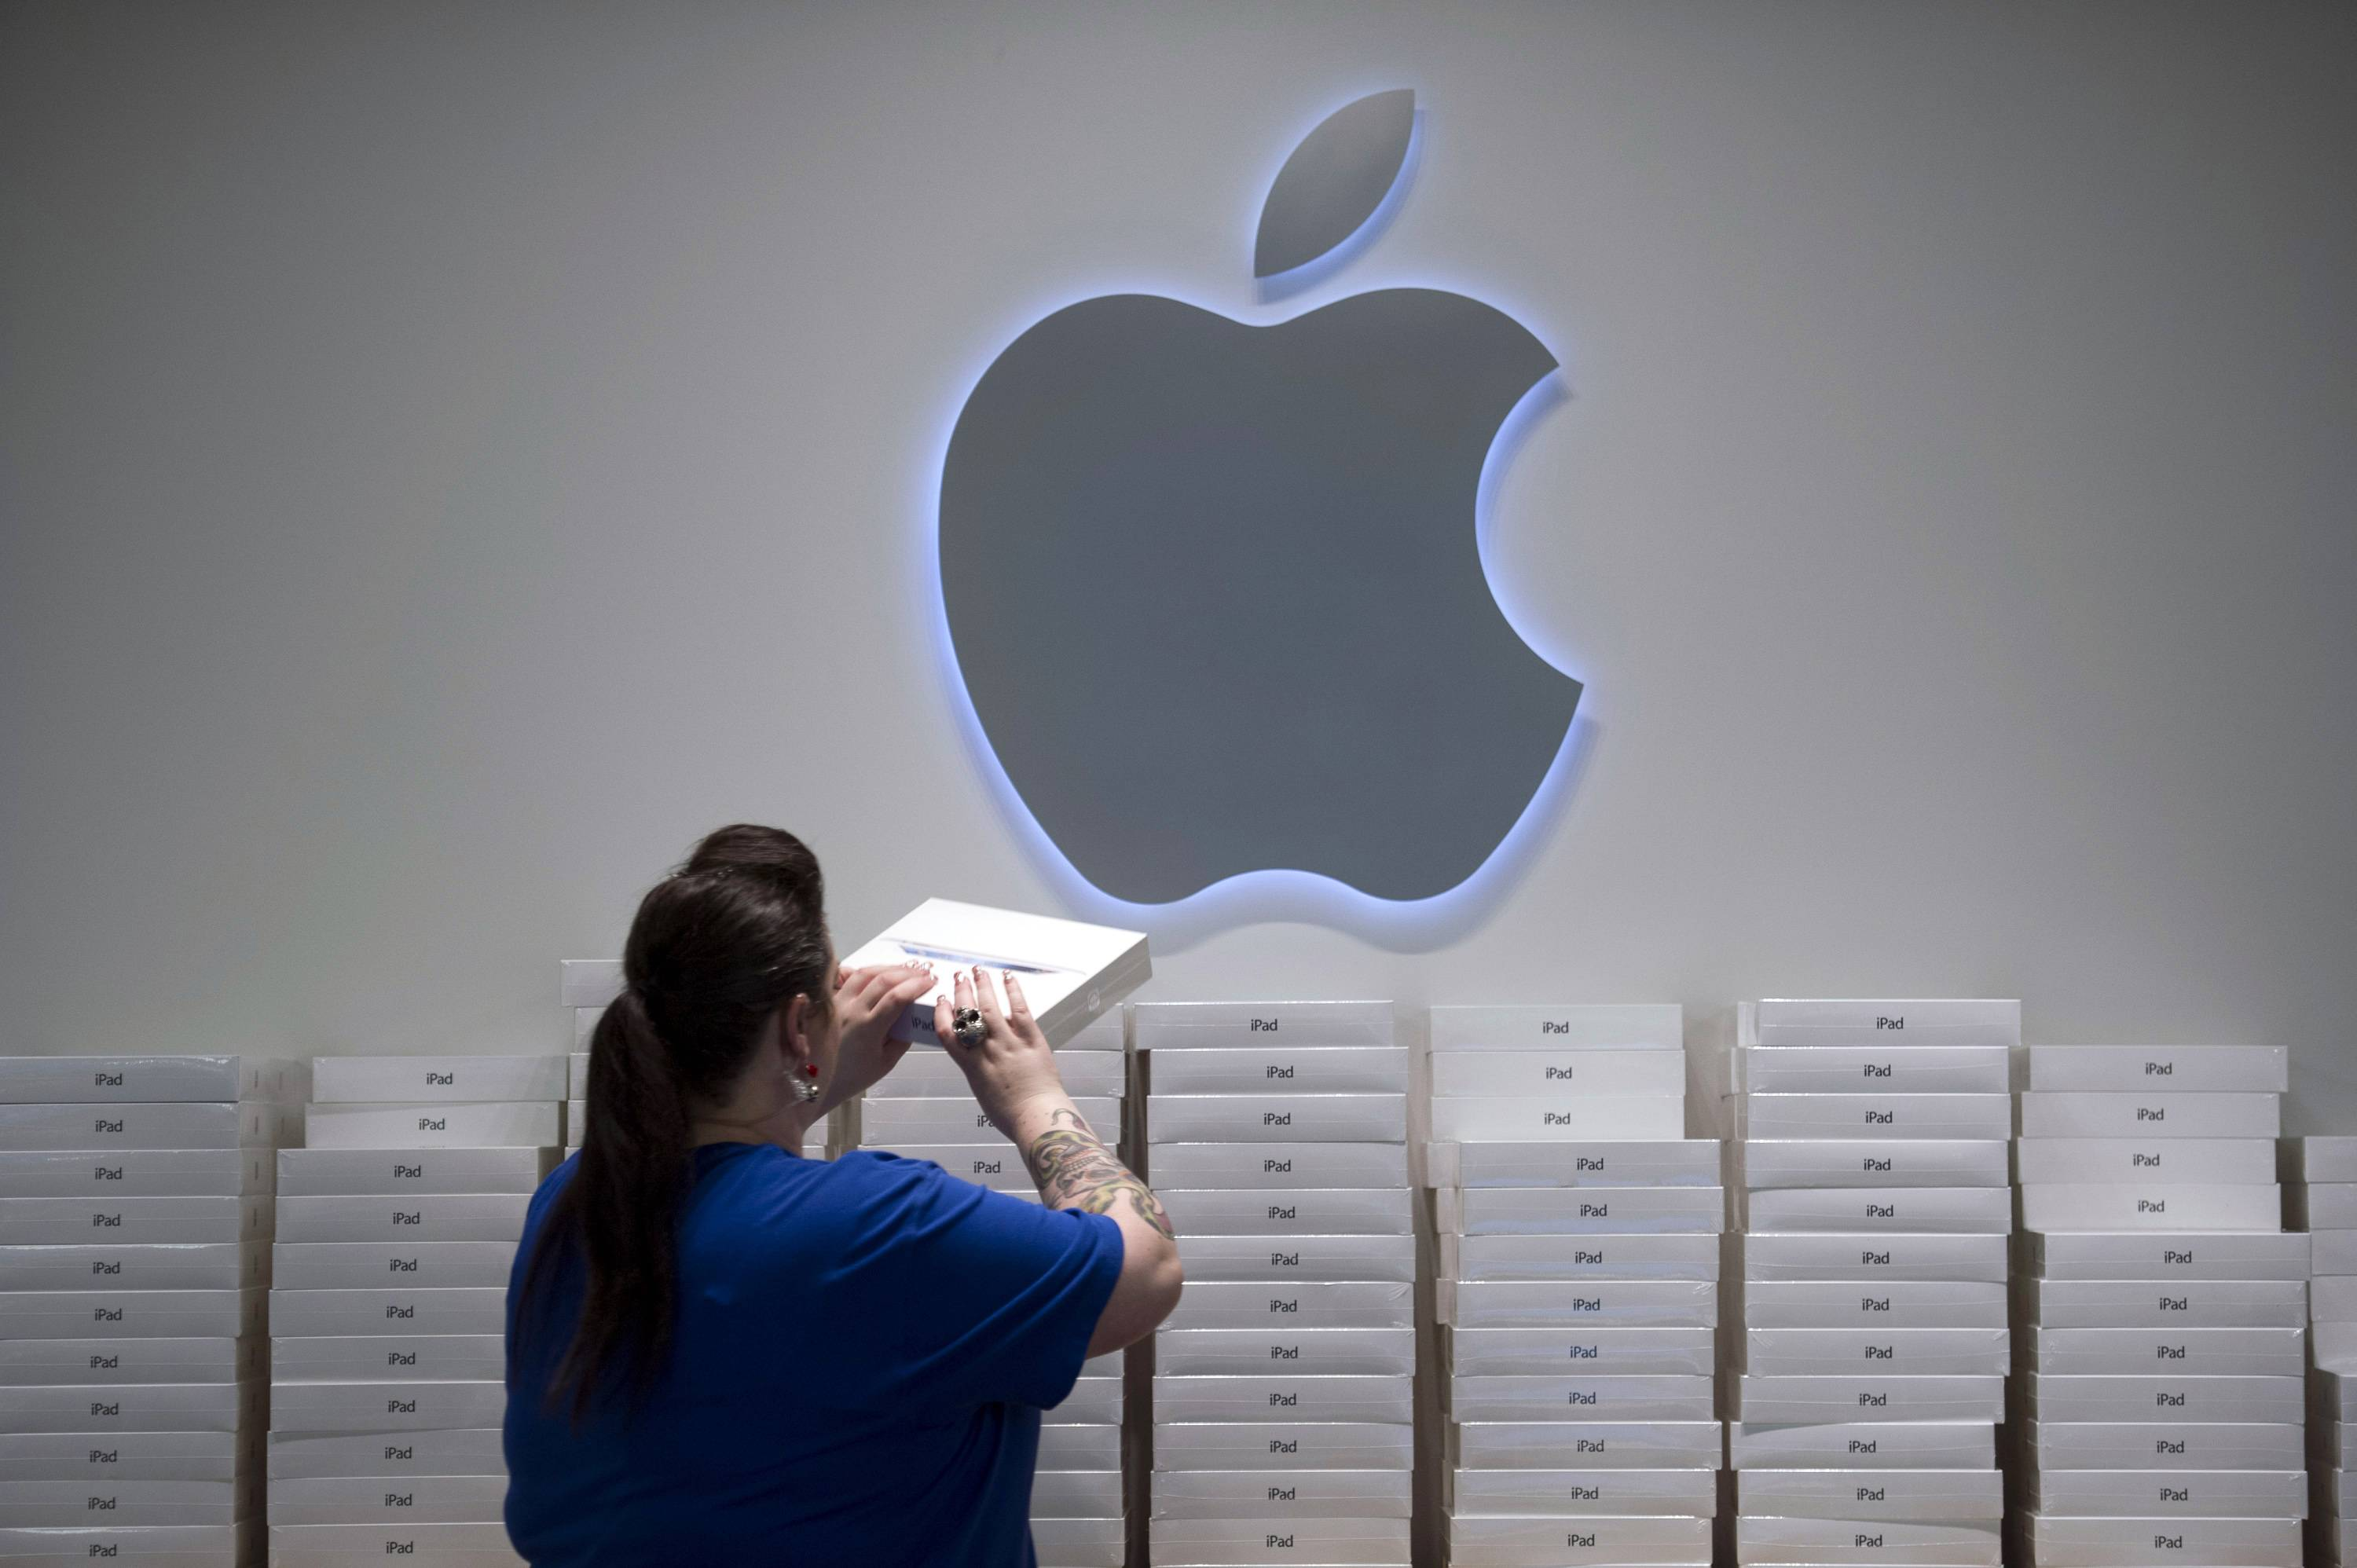 Apple's suppliers are preparing to manufacture the company's largest iPad, with production scheduled to commence by the first quarter of next year, according to people with knowledge of the matter. The new iPad will have a screen measuring 12.9 inches diagonally, said the people, who asked not to be identified because the details aren't public.